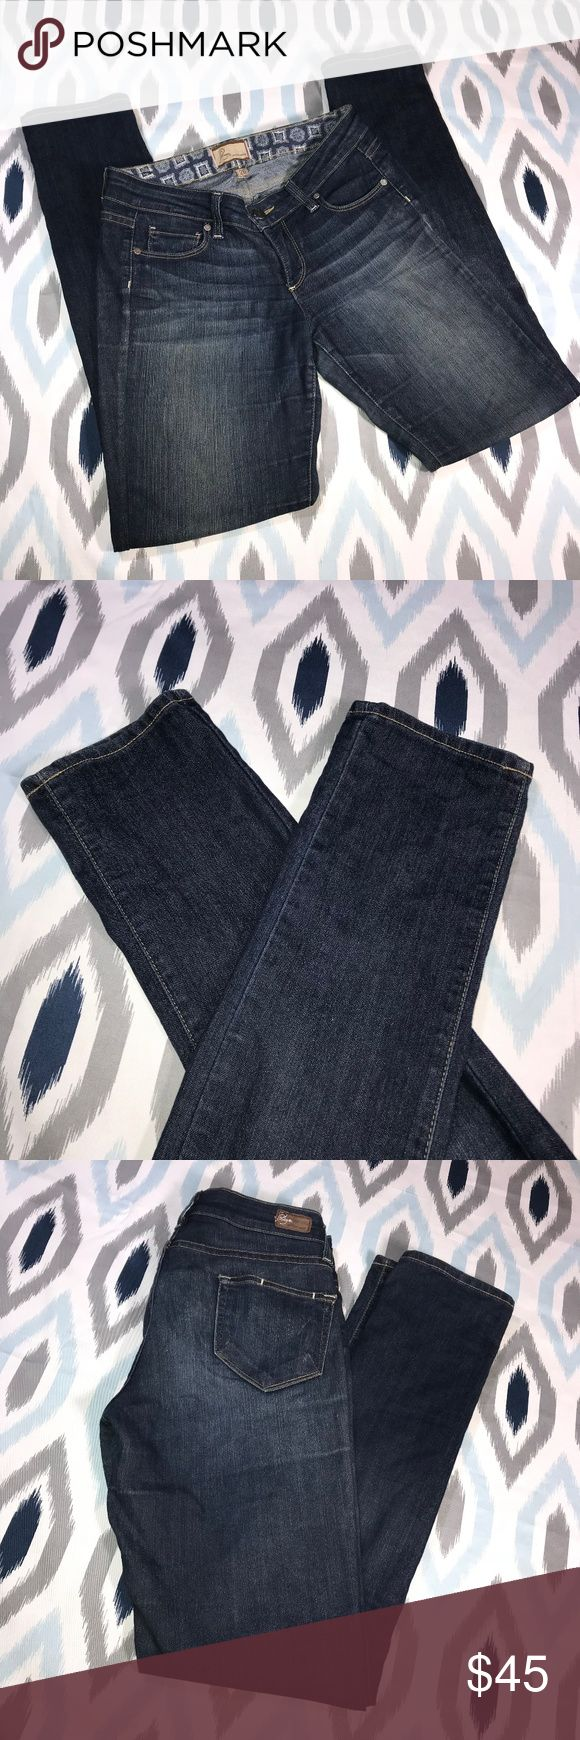 Paige Distressed Wash Peg Skinny Leg Jeans * Paige Distressed Wash Peg Skinny Leg Jeans * Size 26 * Made of 80% cotton, 19% polyester & 1% spandex.  * Pre-owned, but in great used condition. No holes, stains or pilling. These jeans do have very light puckering around the zipper. Please refer to last photo for reference. You can't really notice it!  * Measurements: Waist laying flat is 14 1/2 inches. Length is 39 1/2 inches. Inseam is 31 1/2 inches. Rise is 7 1/2 inches.   JE108 PAIGE Jeans…